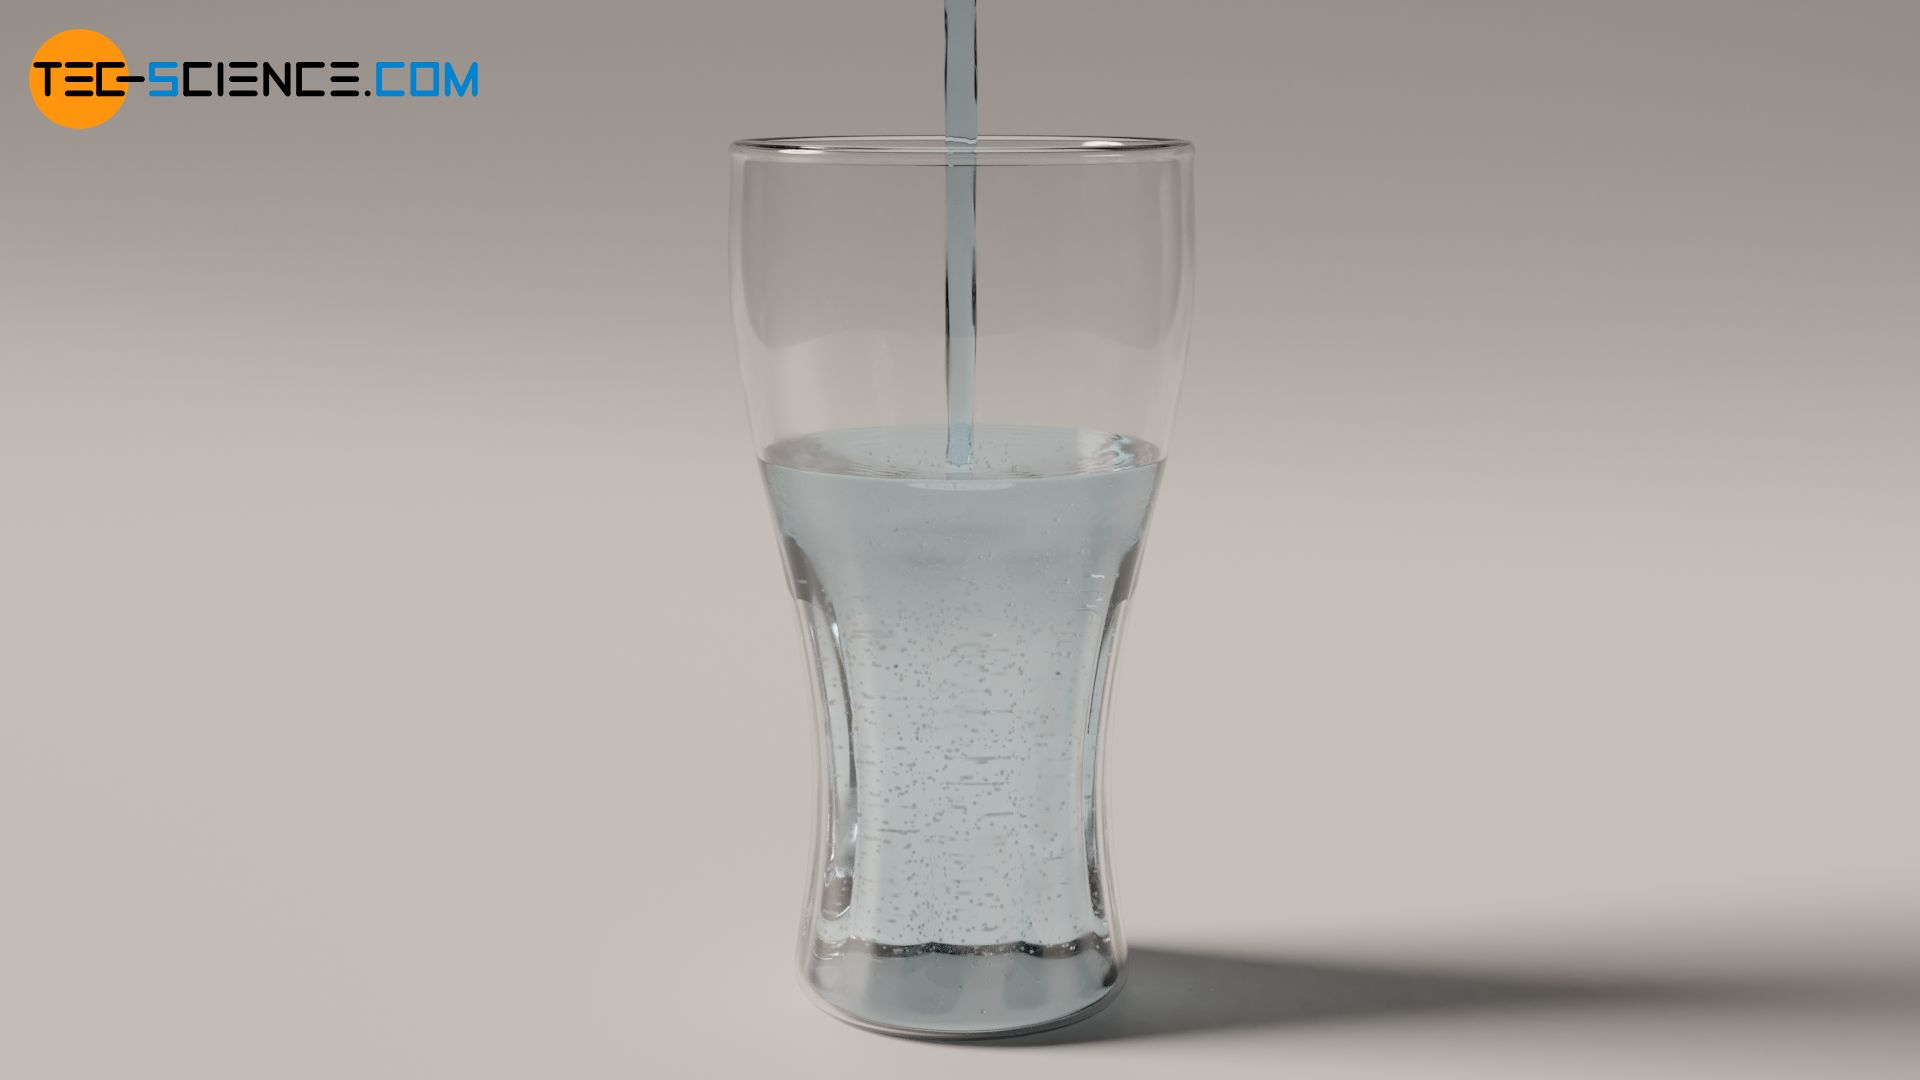 Pouring hot water into a cold glass